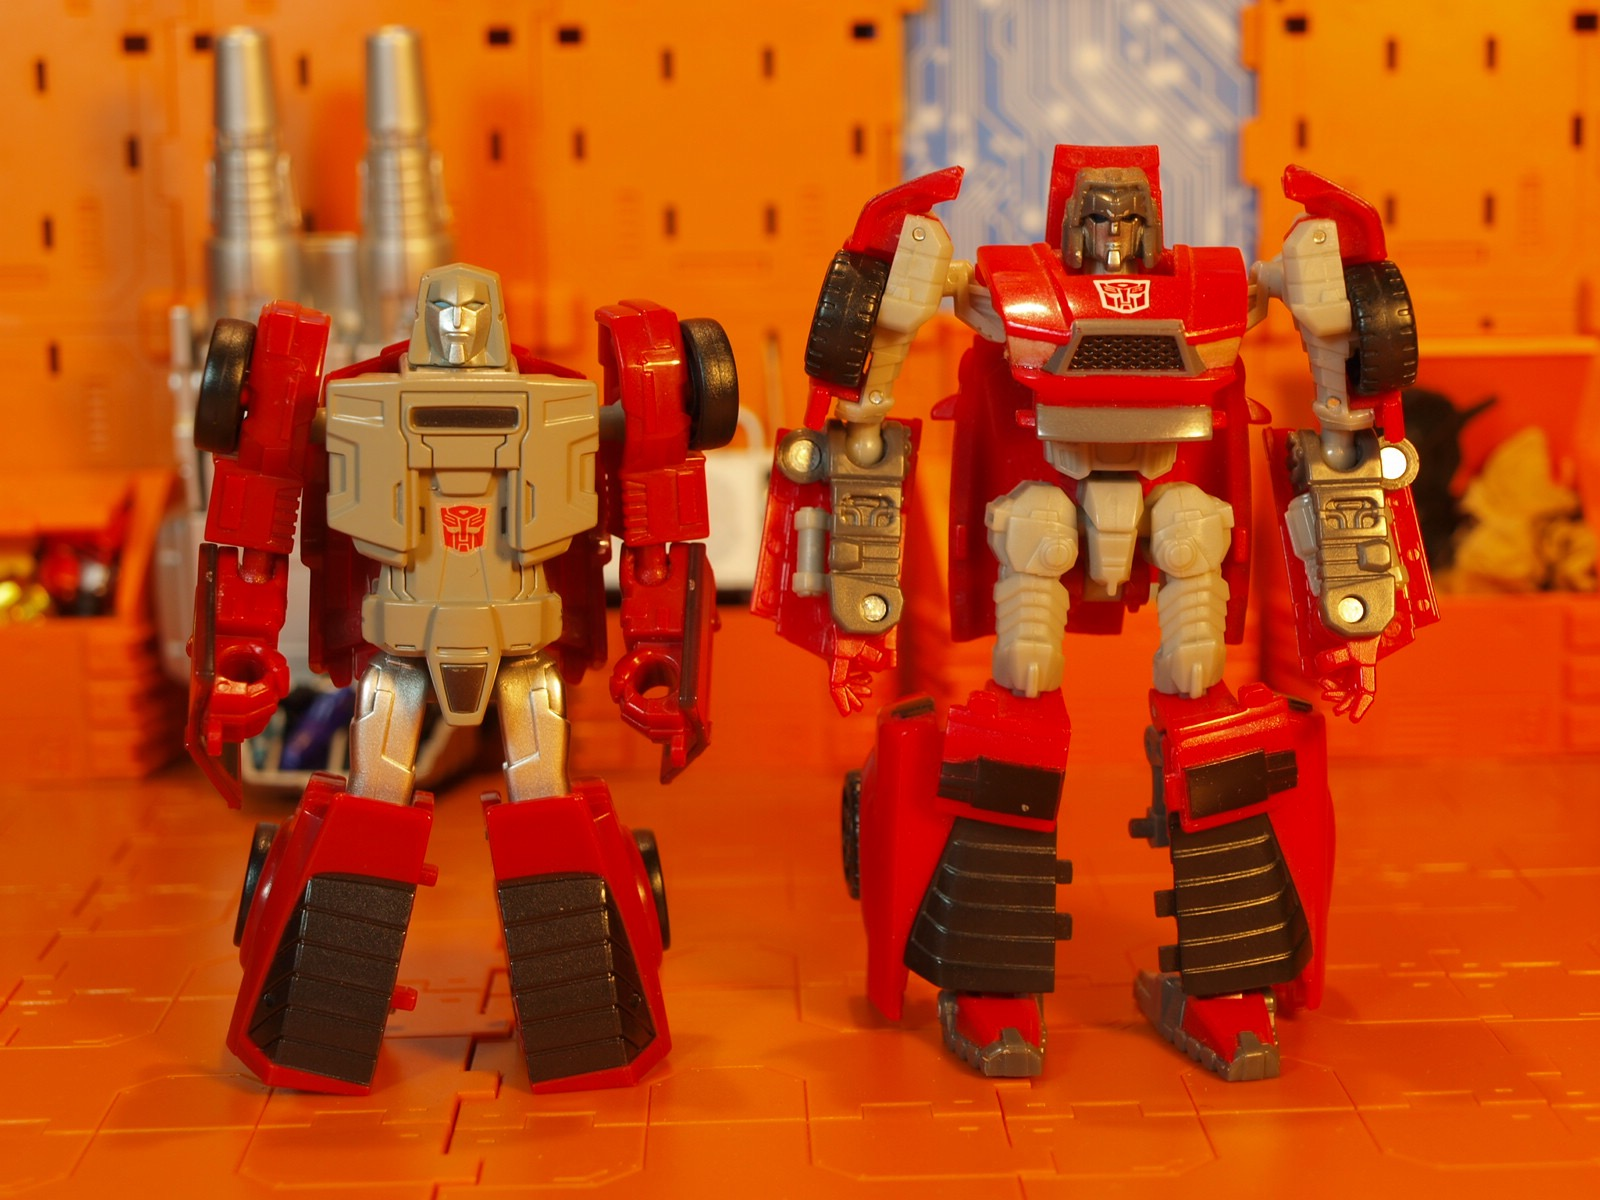 Windcharger comparison robot mode